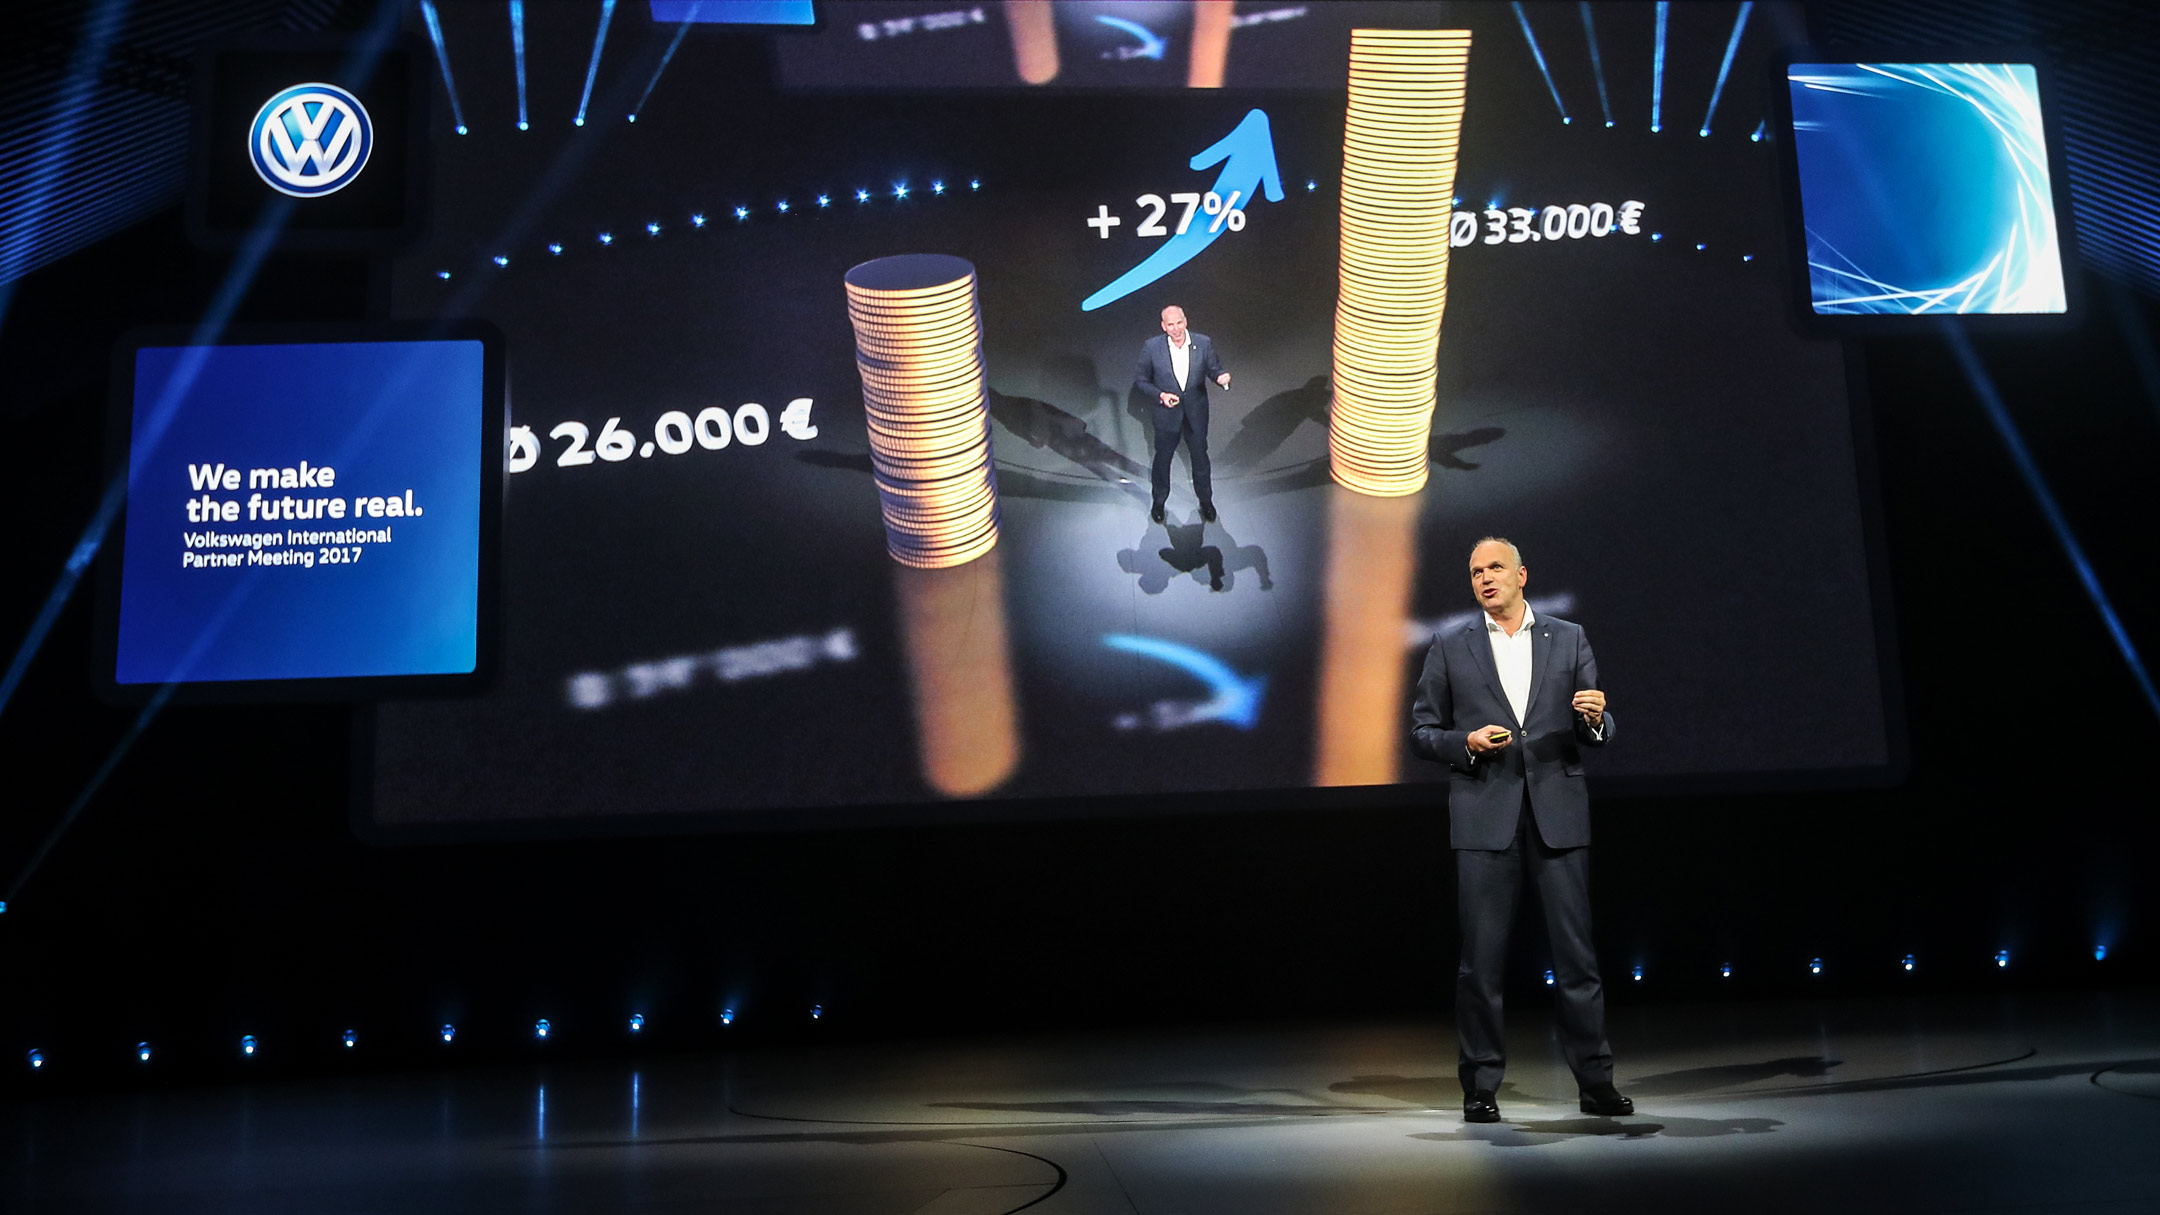 Volkswagen Sales Director Jürgen Stackmann stands on stage. Behind him you can see a screen on which two towers of coins are depicted by Augmented Reality.